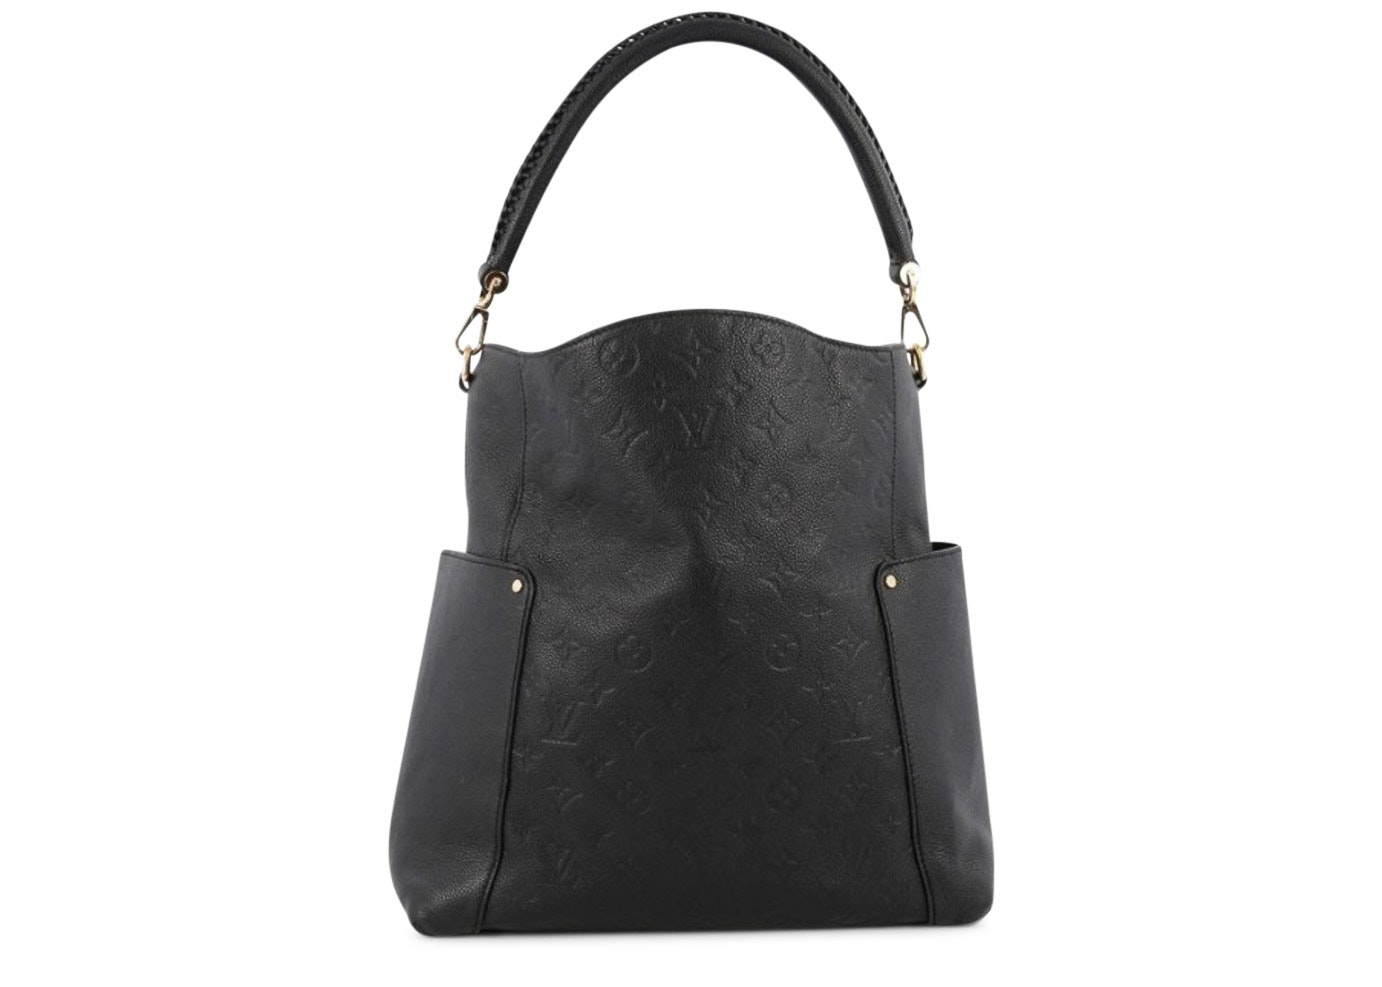 Louis Vuitton Bagatelle Monogram Empreinte Black